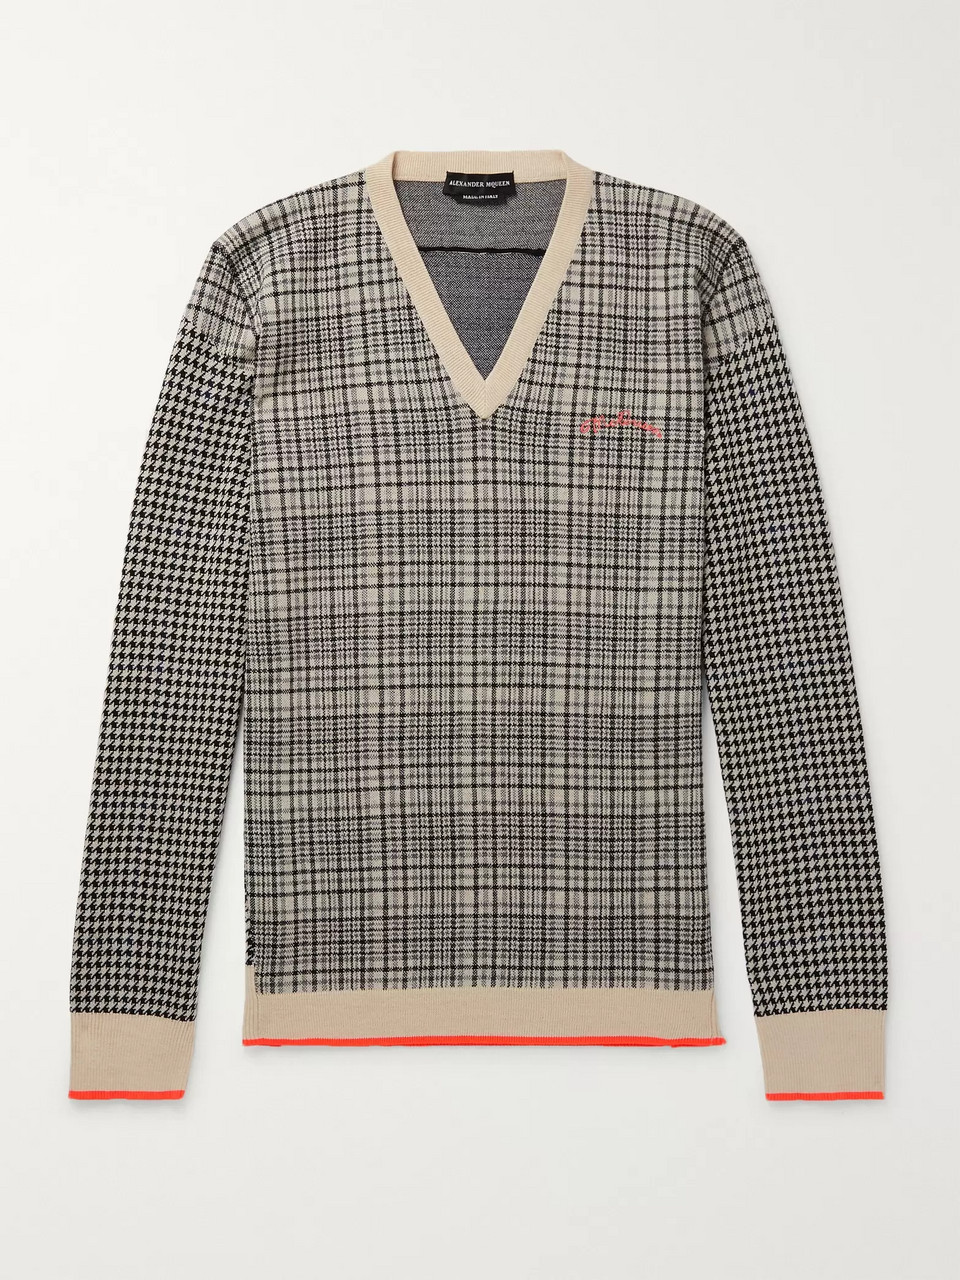 Alexander McQueen Houndstooth and Checked Wool Sweater